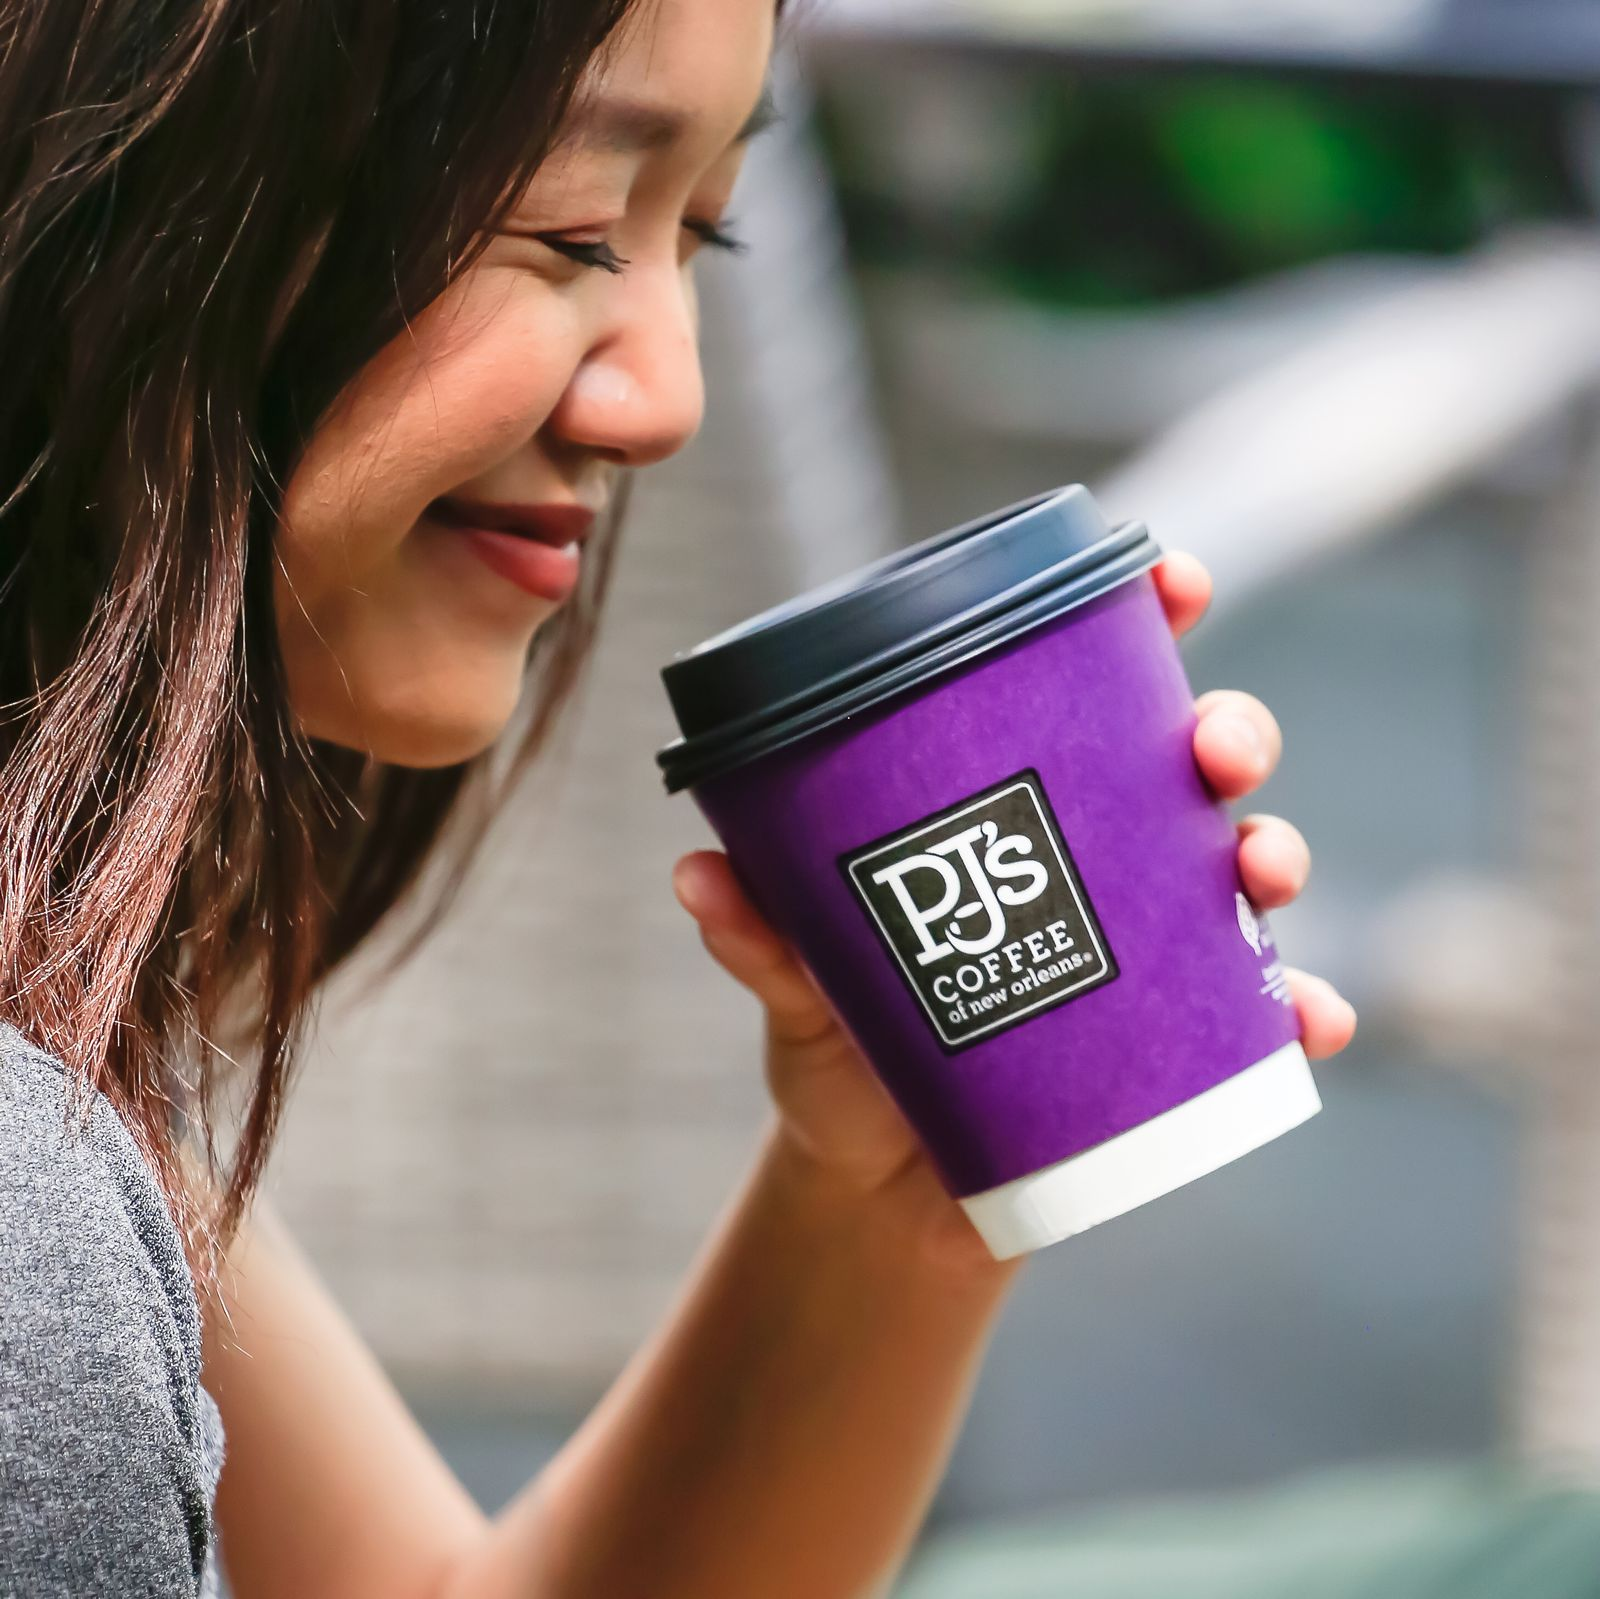 Coffee & Convenience: Why Drive-Thrus Make All the Difference Among Today's Consumers